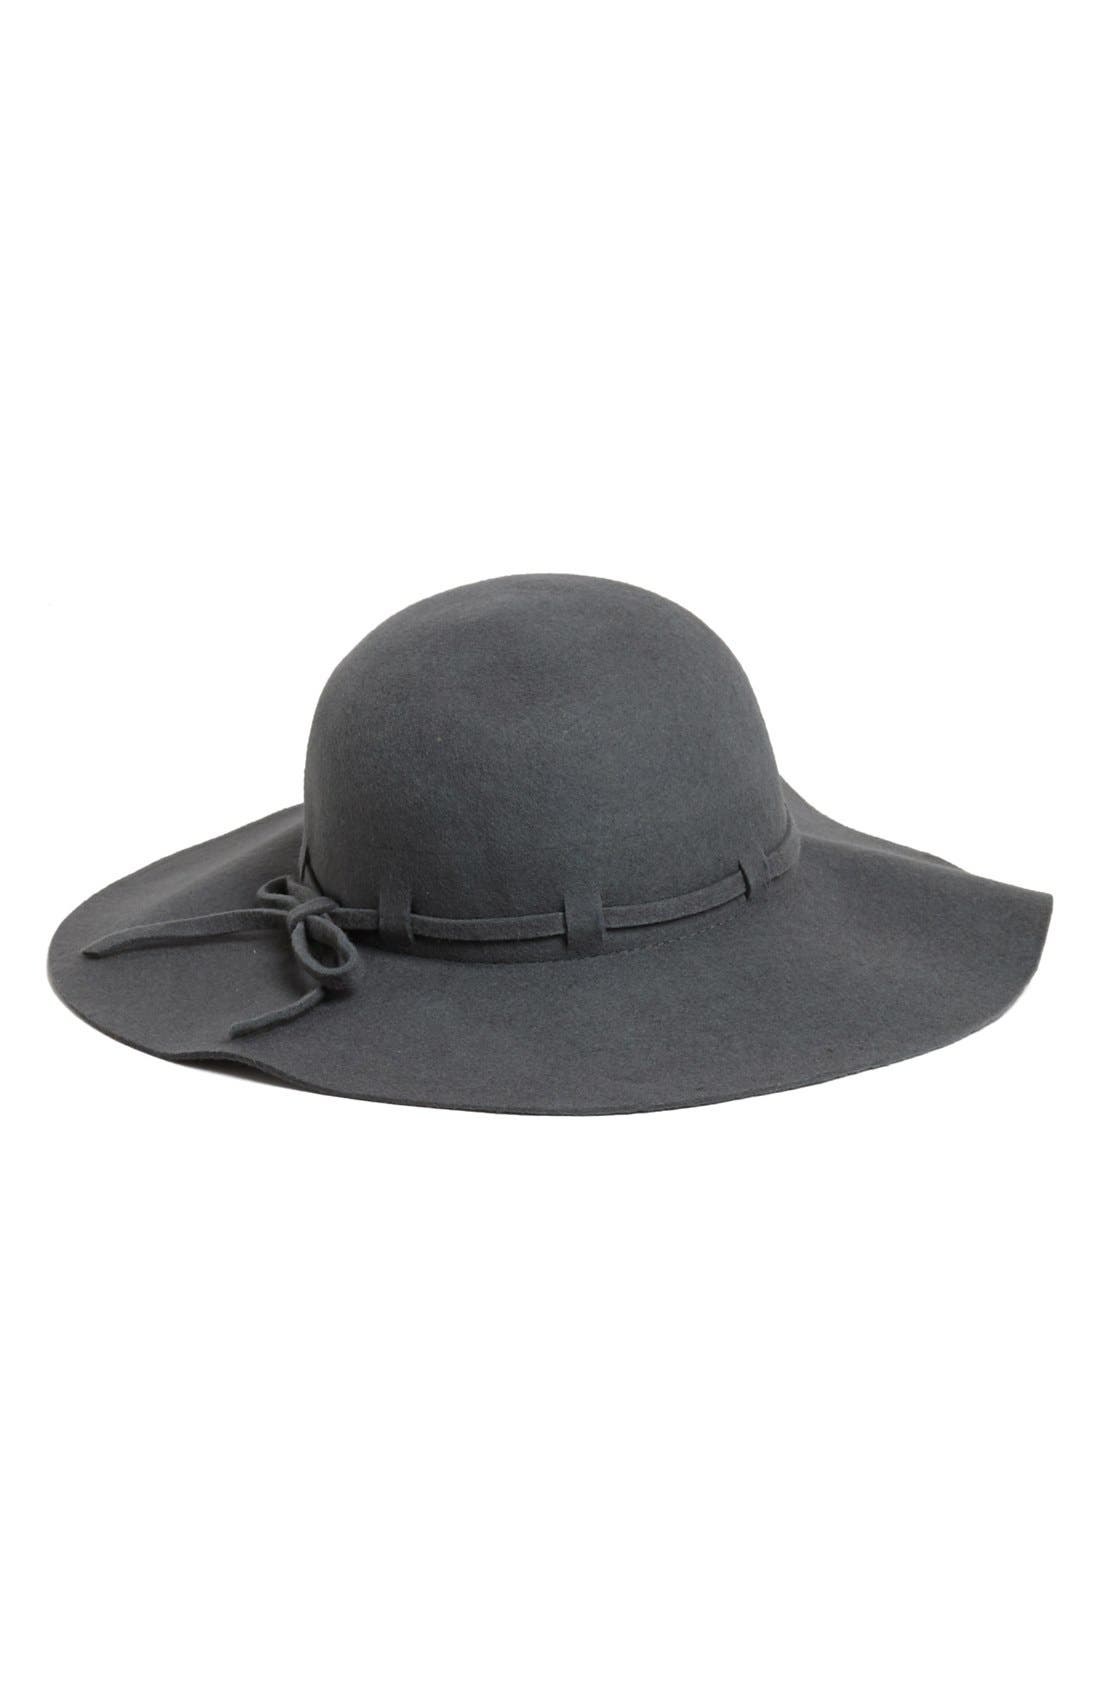 Main Image - Collection XIIX Floppy Wool Felt Hat